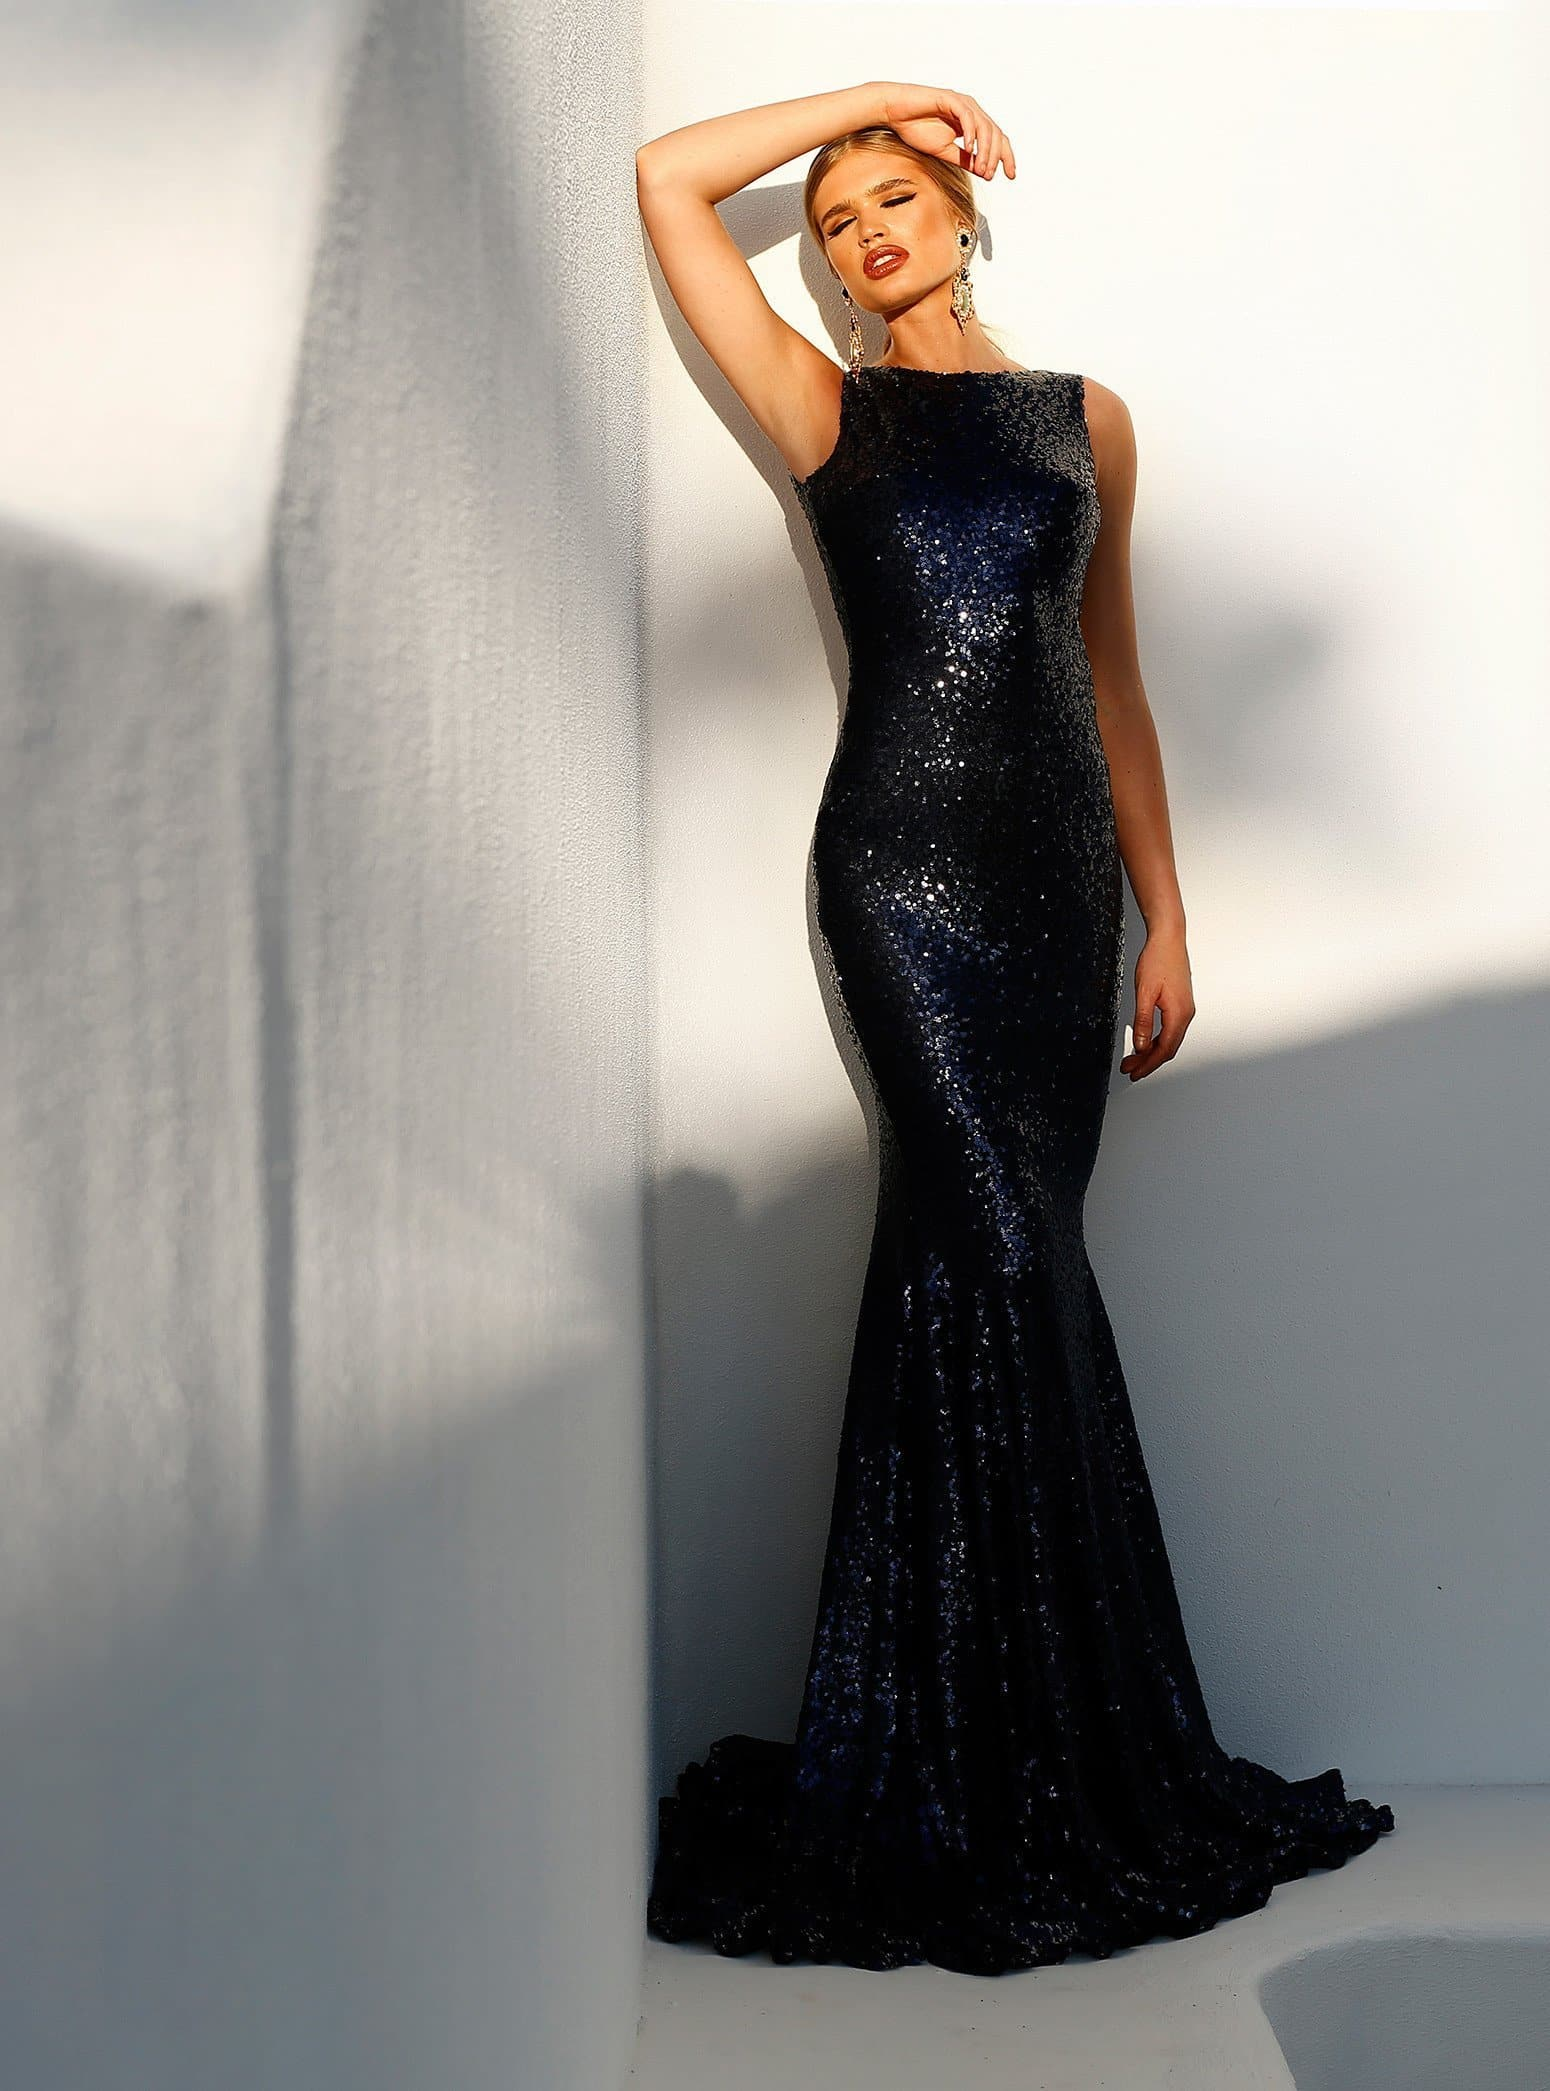 7171bab8aaf8c Stone - Navy Sequin Sleeveless Gown with Low Back   Mermaid Train